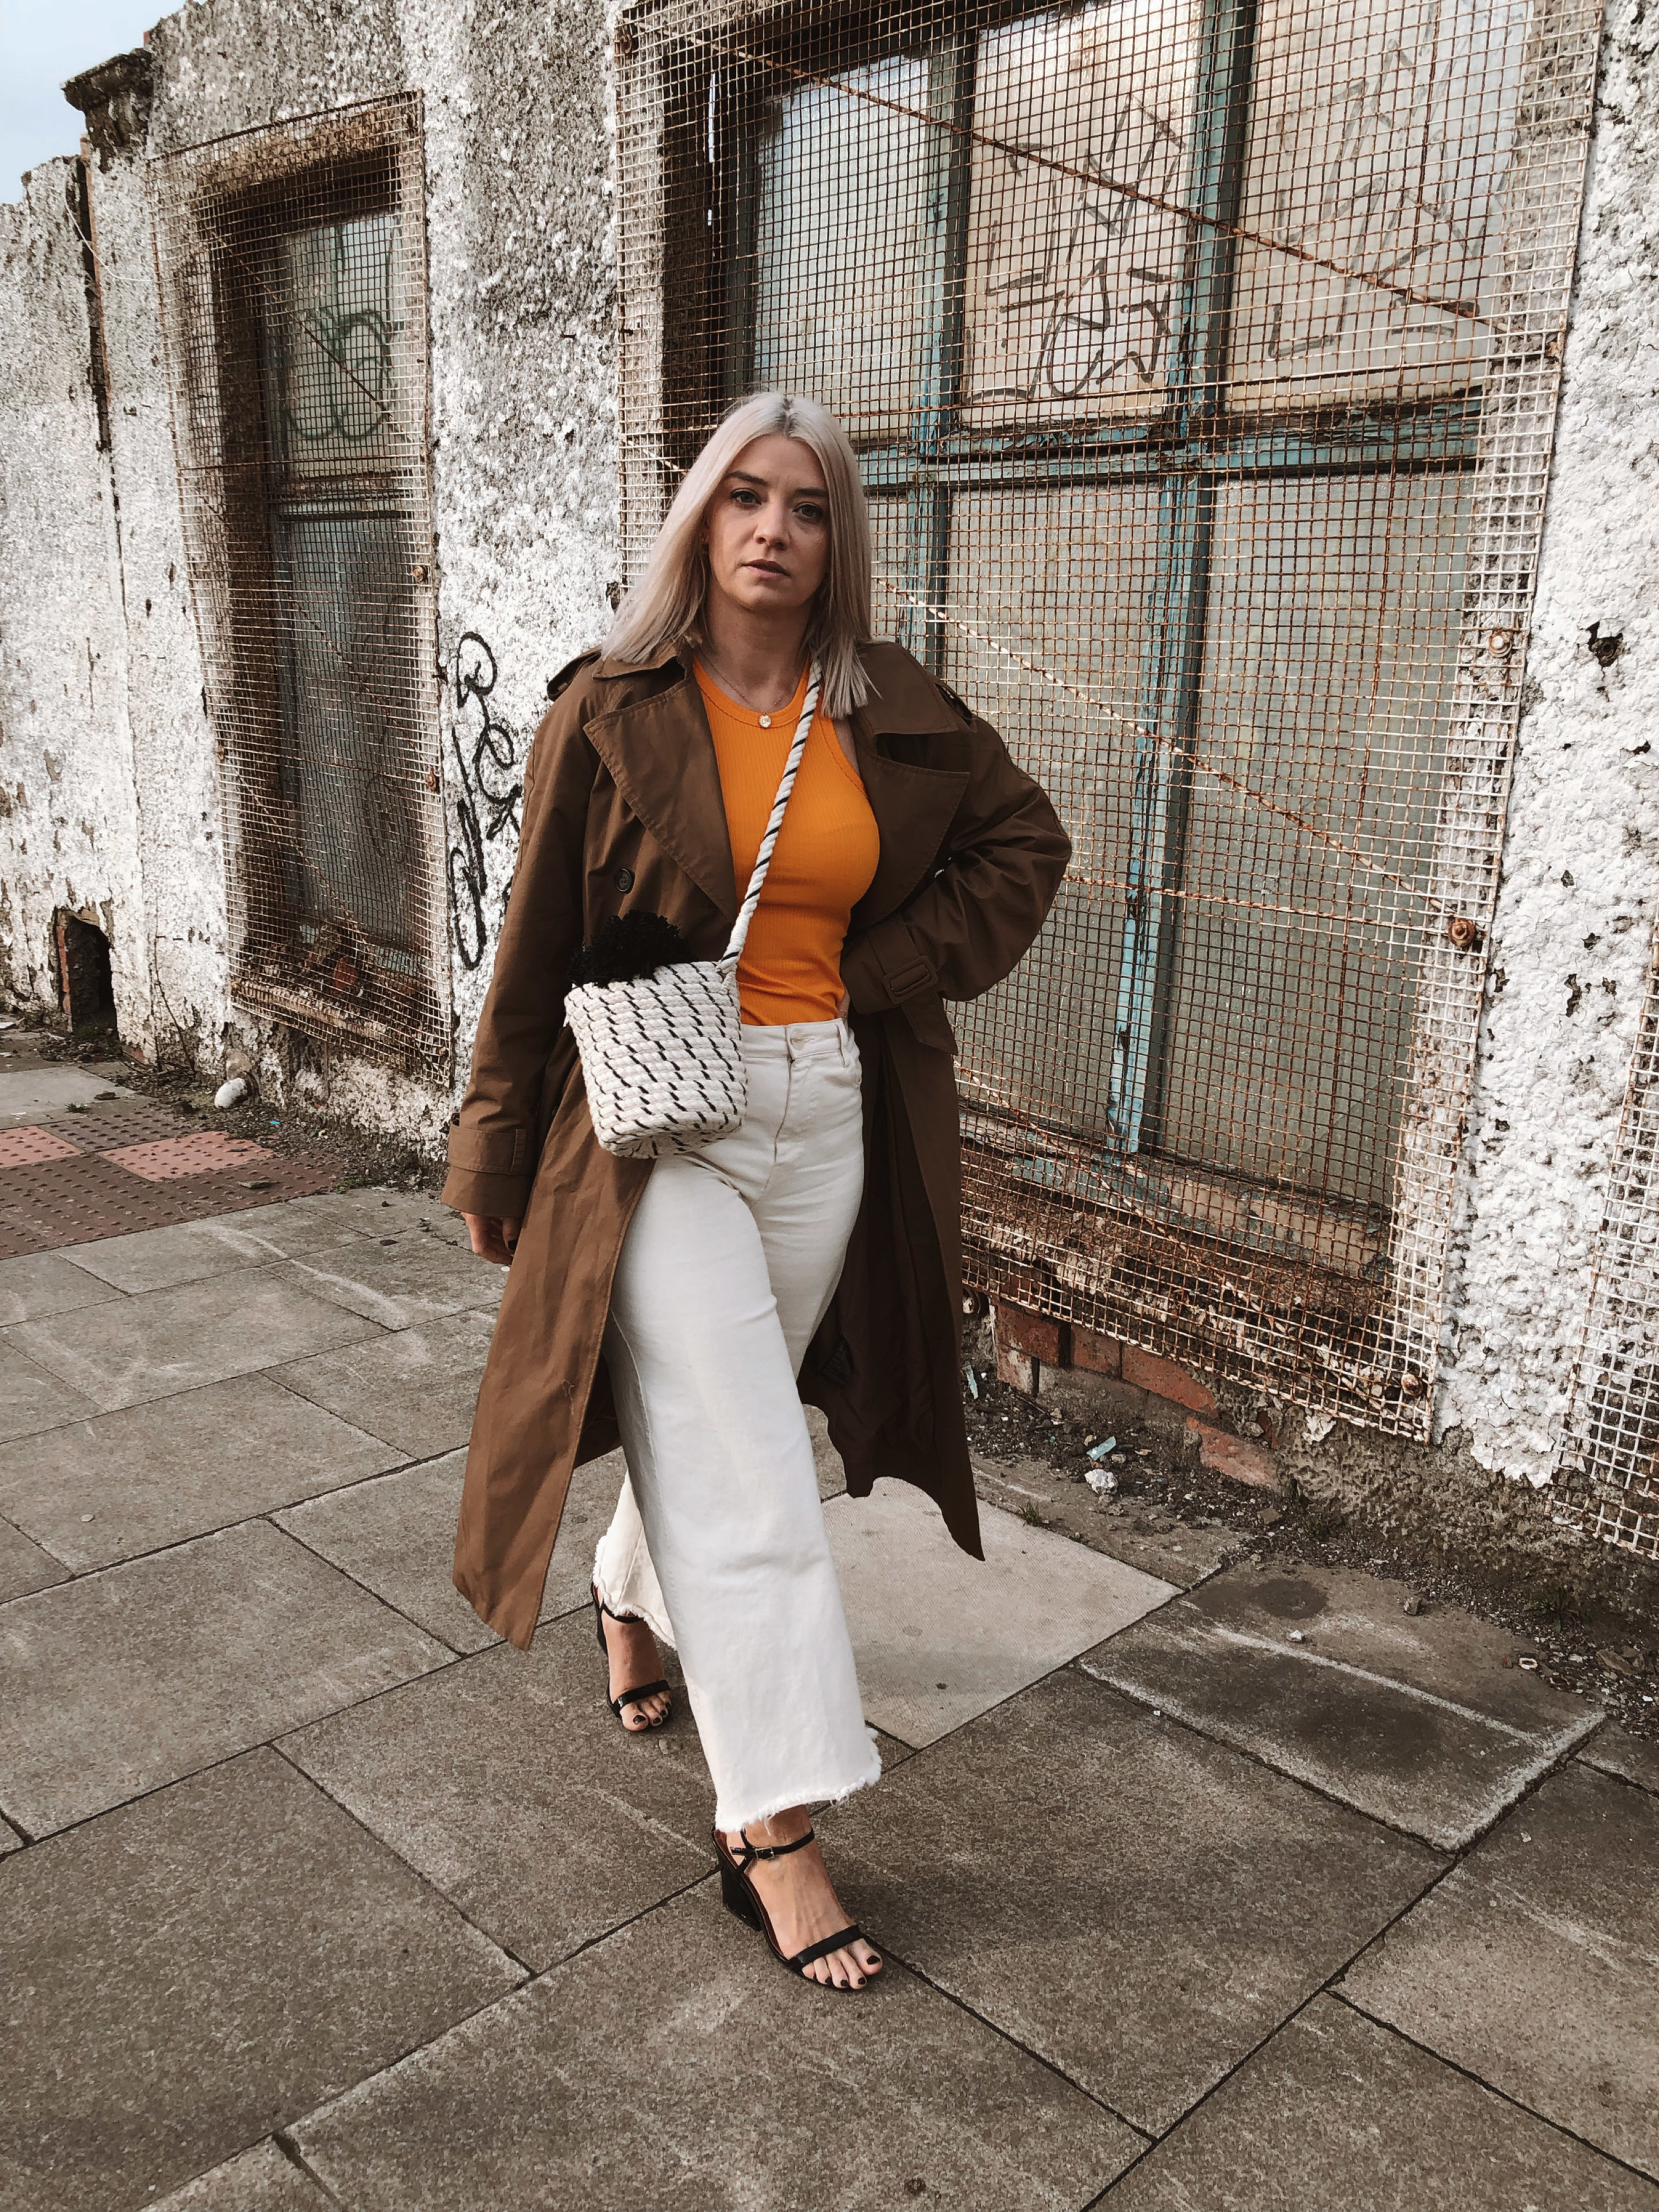 h&m studio collection ss19, cream jeans, orange tank top, ribbed tank top, trench coat, black heels, joey taylor, northern magpie 1